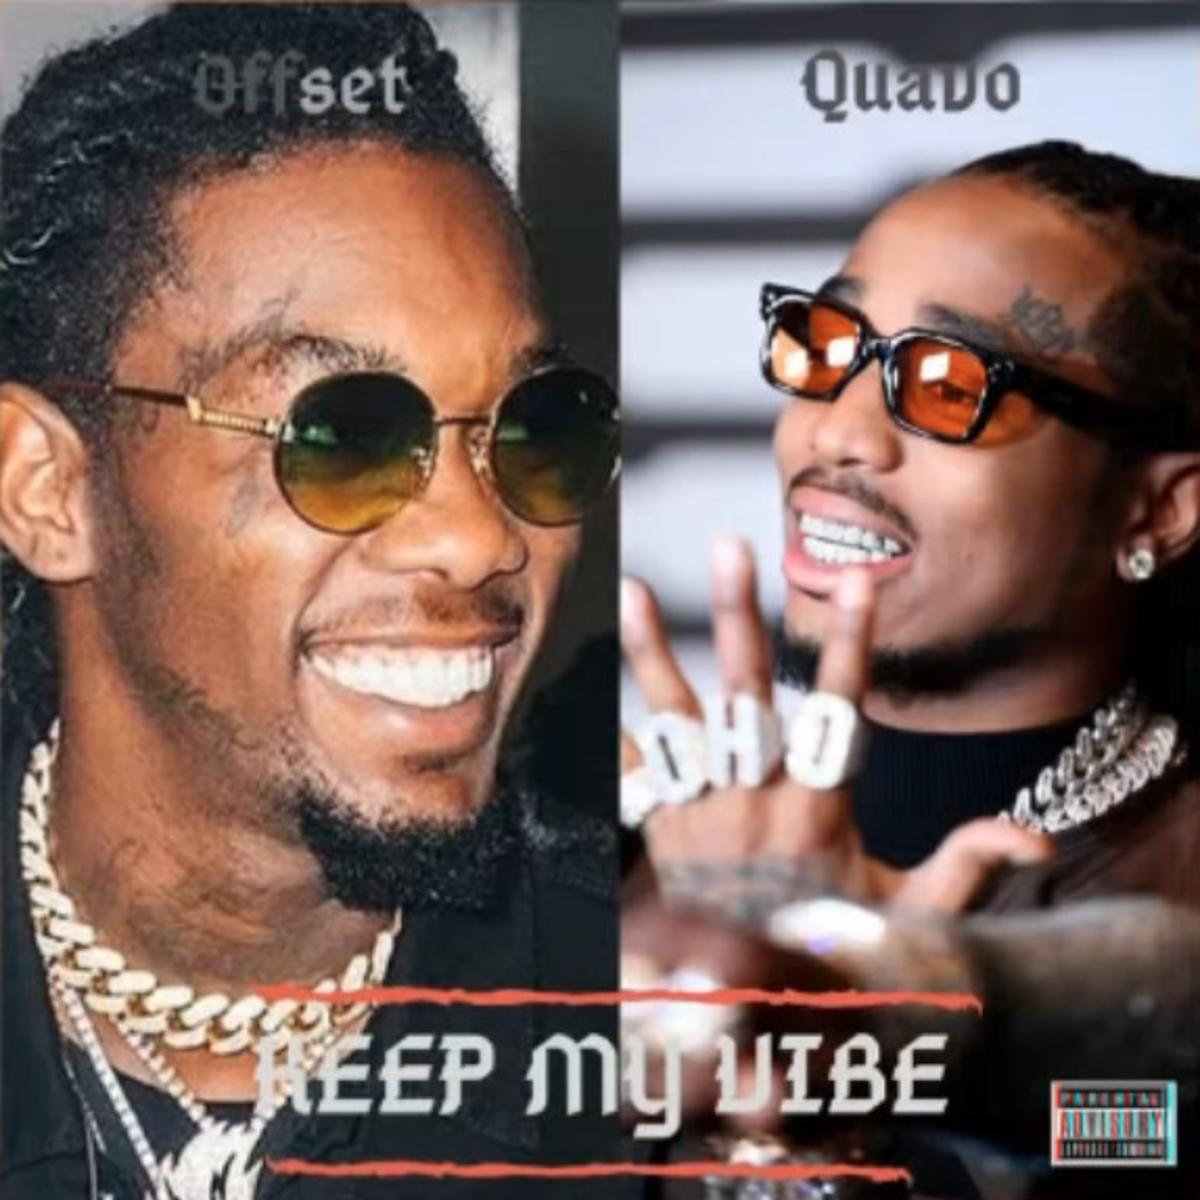 Quavo - Keep My Vibe Feat. Offset